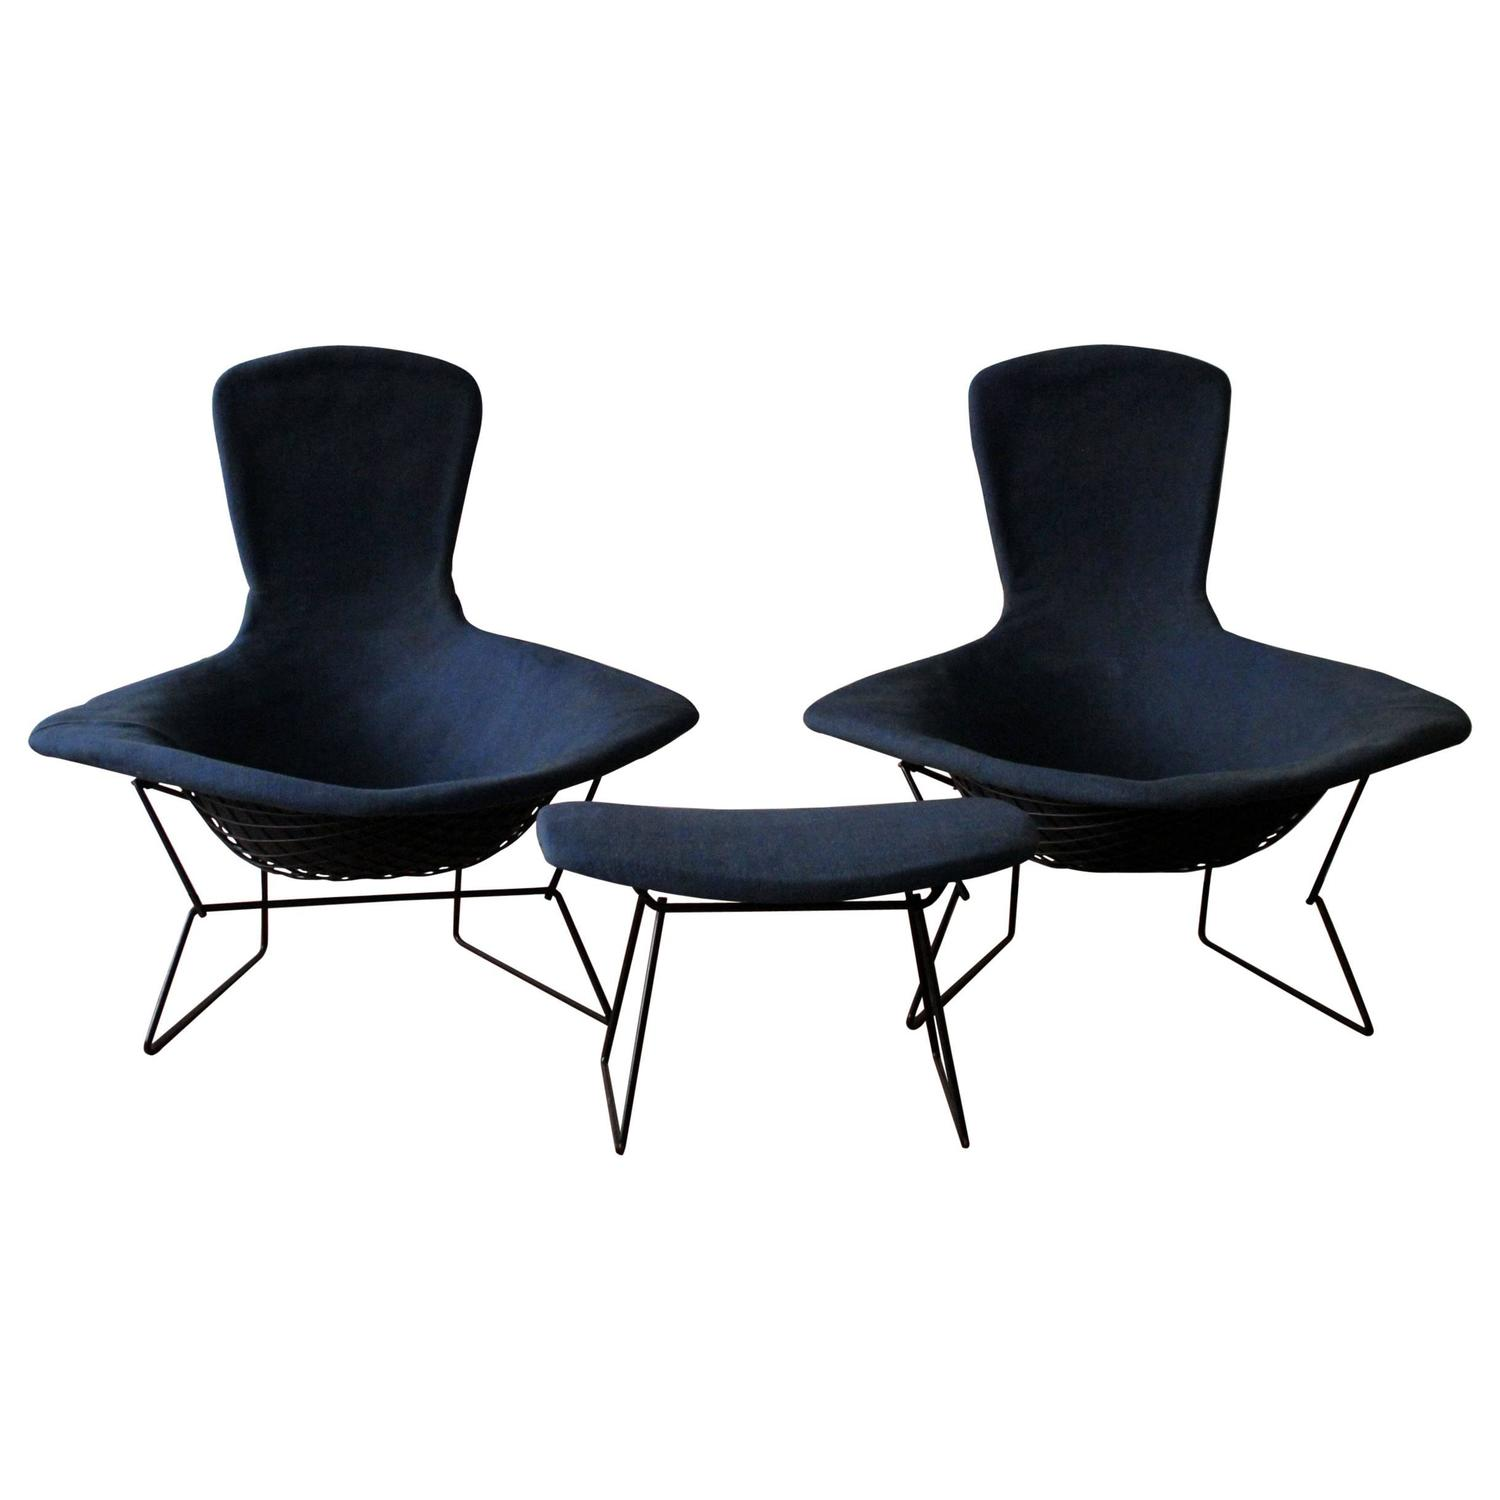 knoll bertoia chair lycra covers for sale uk authentic vintage harry bird chairs and